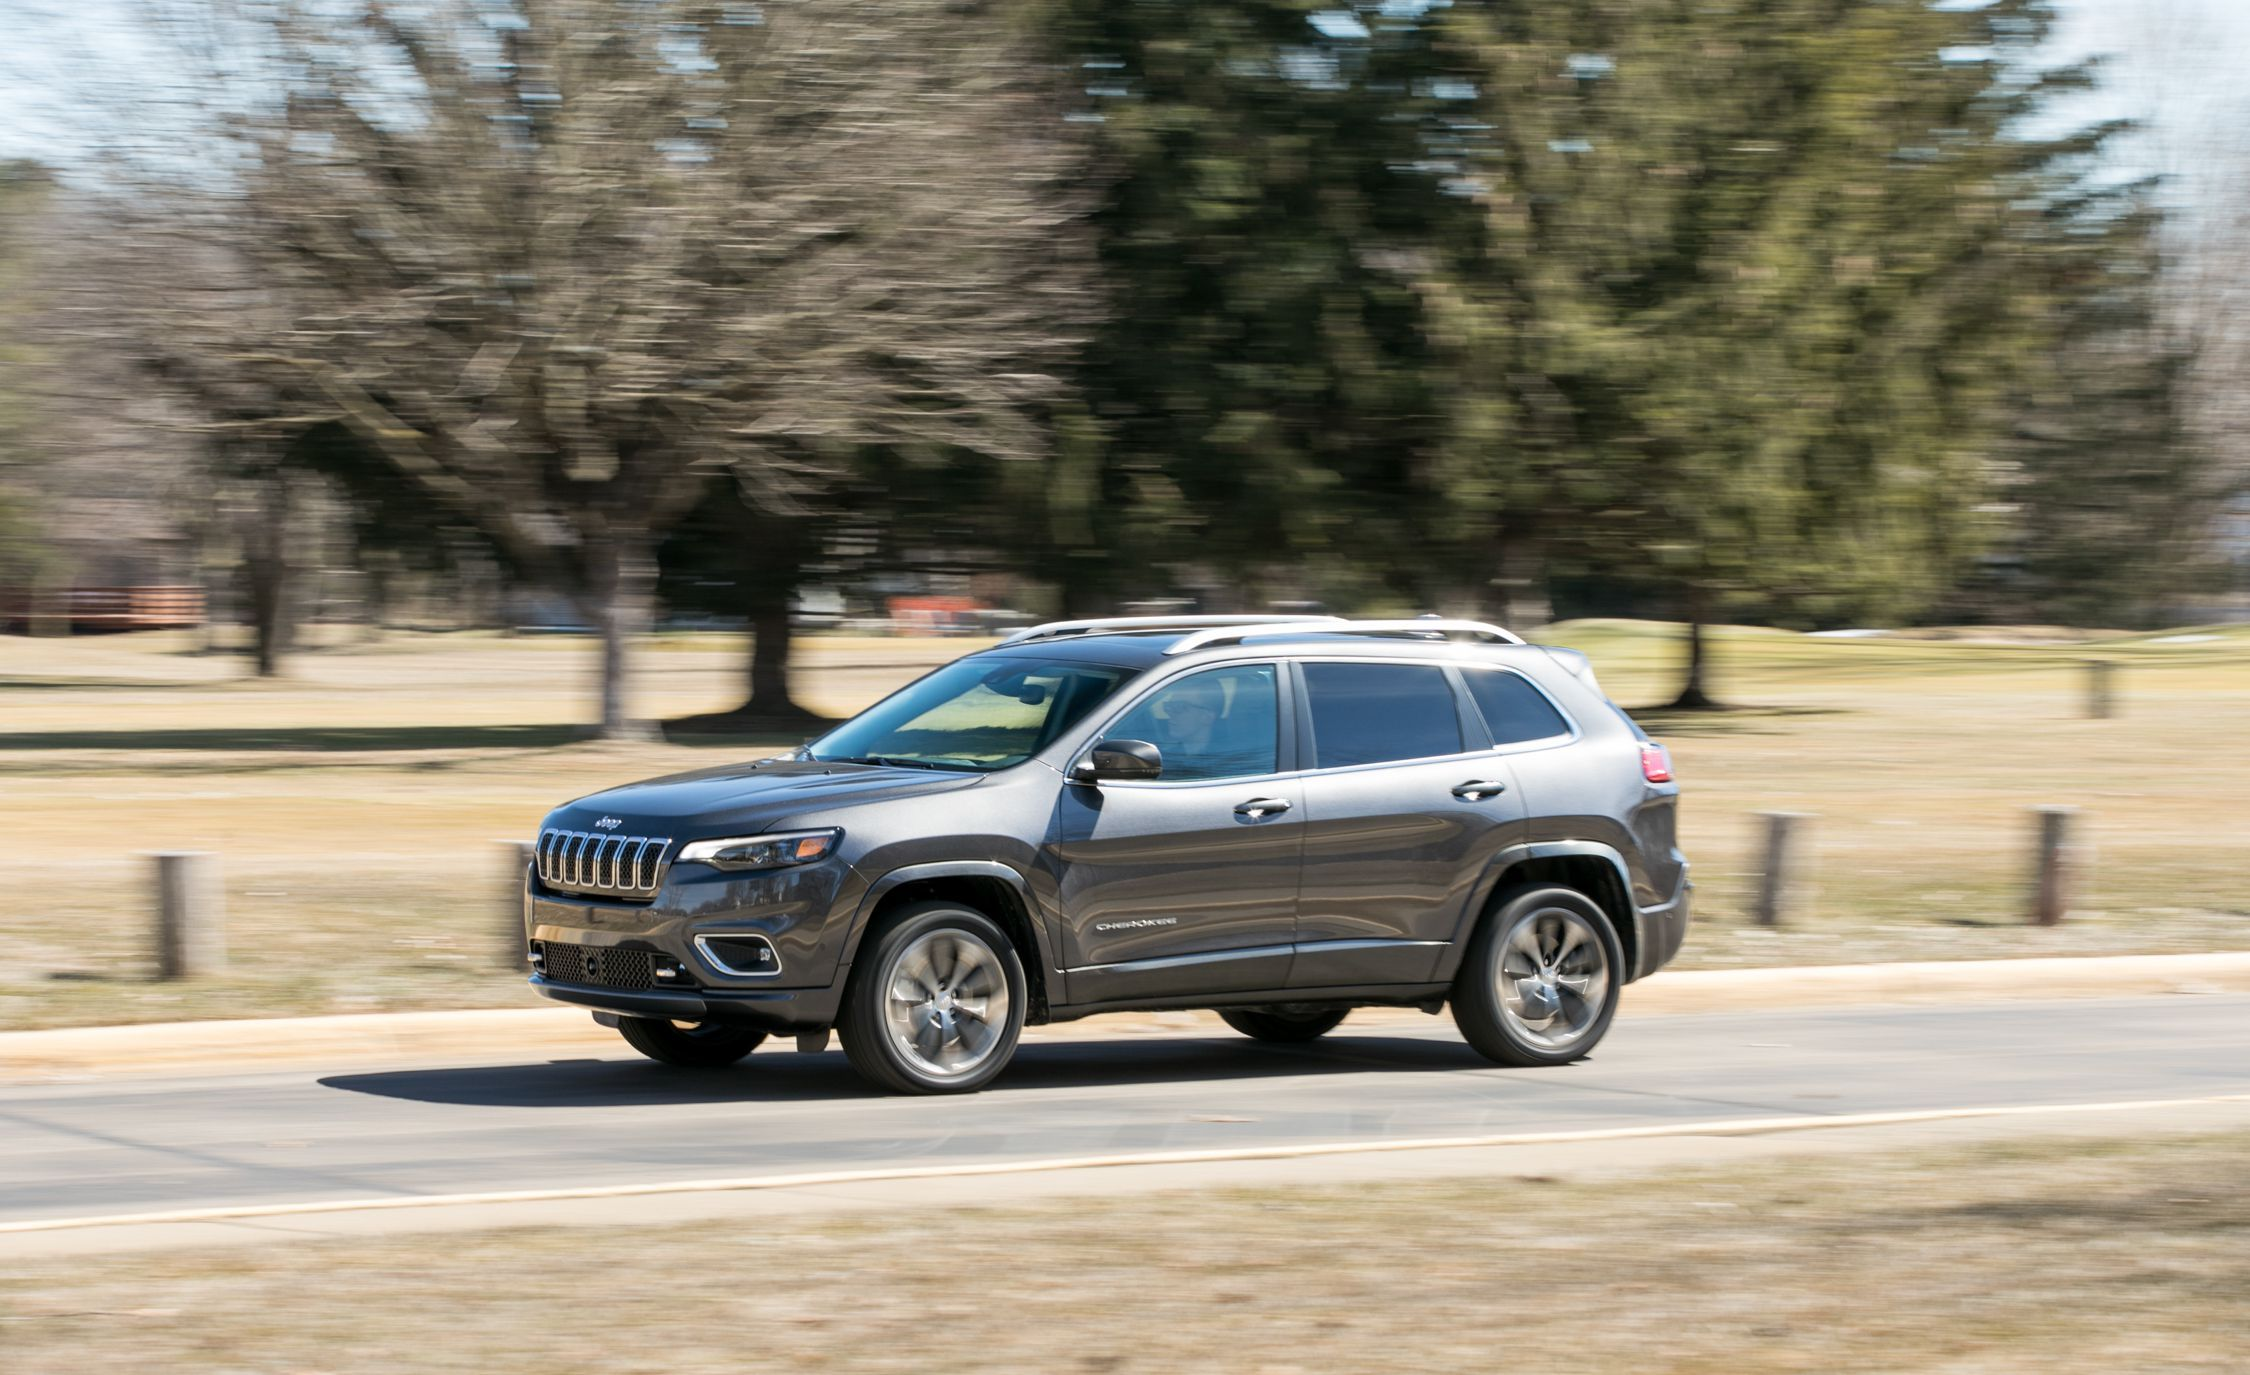 2019 Jeep Cherokee Reviews Jeep Cherokee Price Photos And Specs